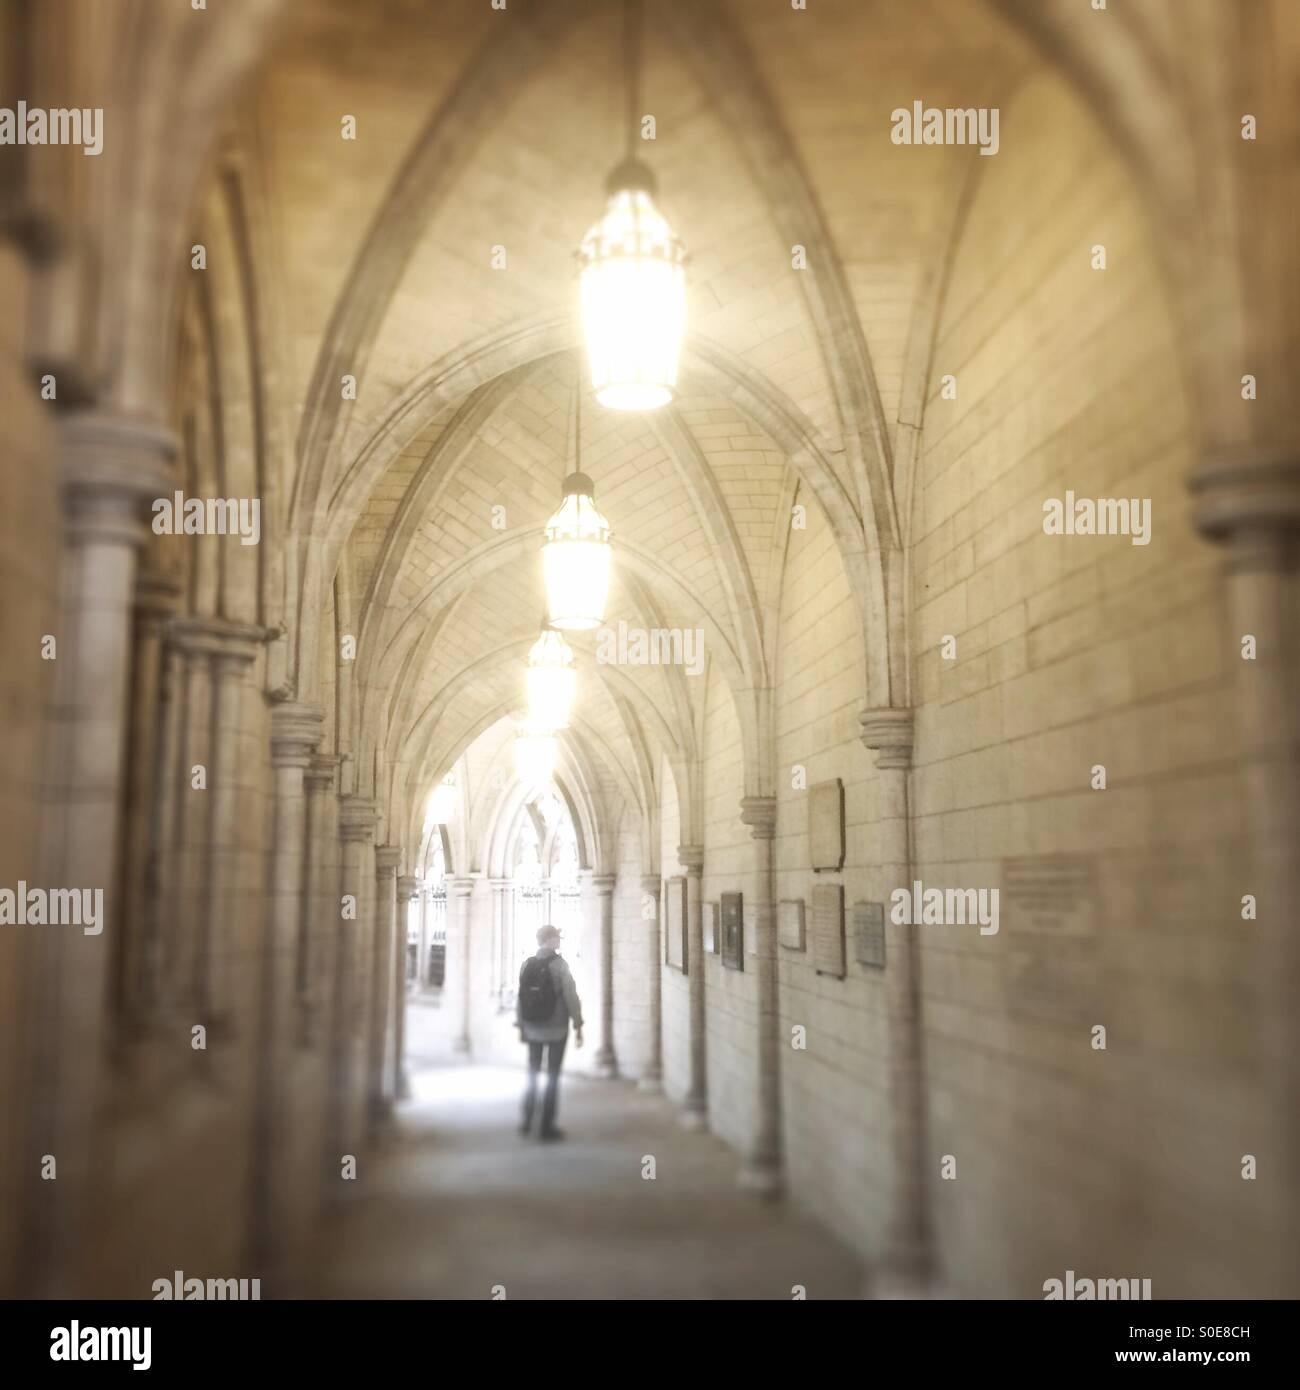 Man in passageway in church, London - Stock Image